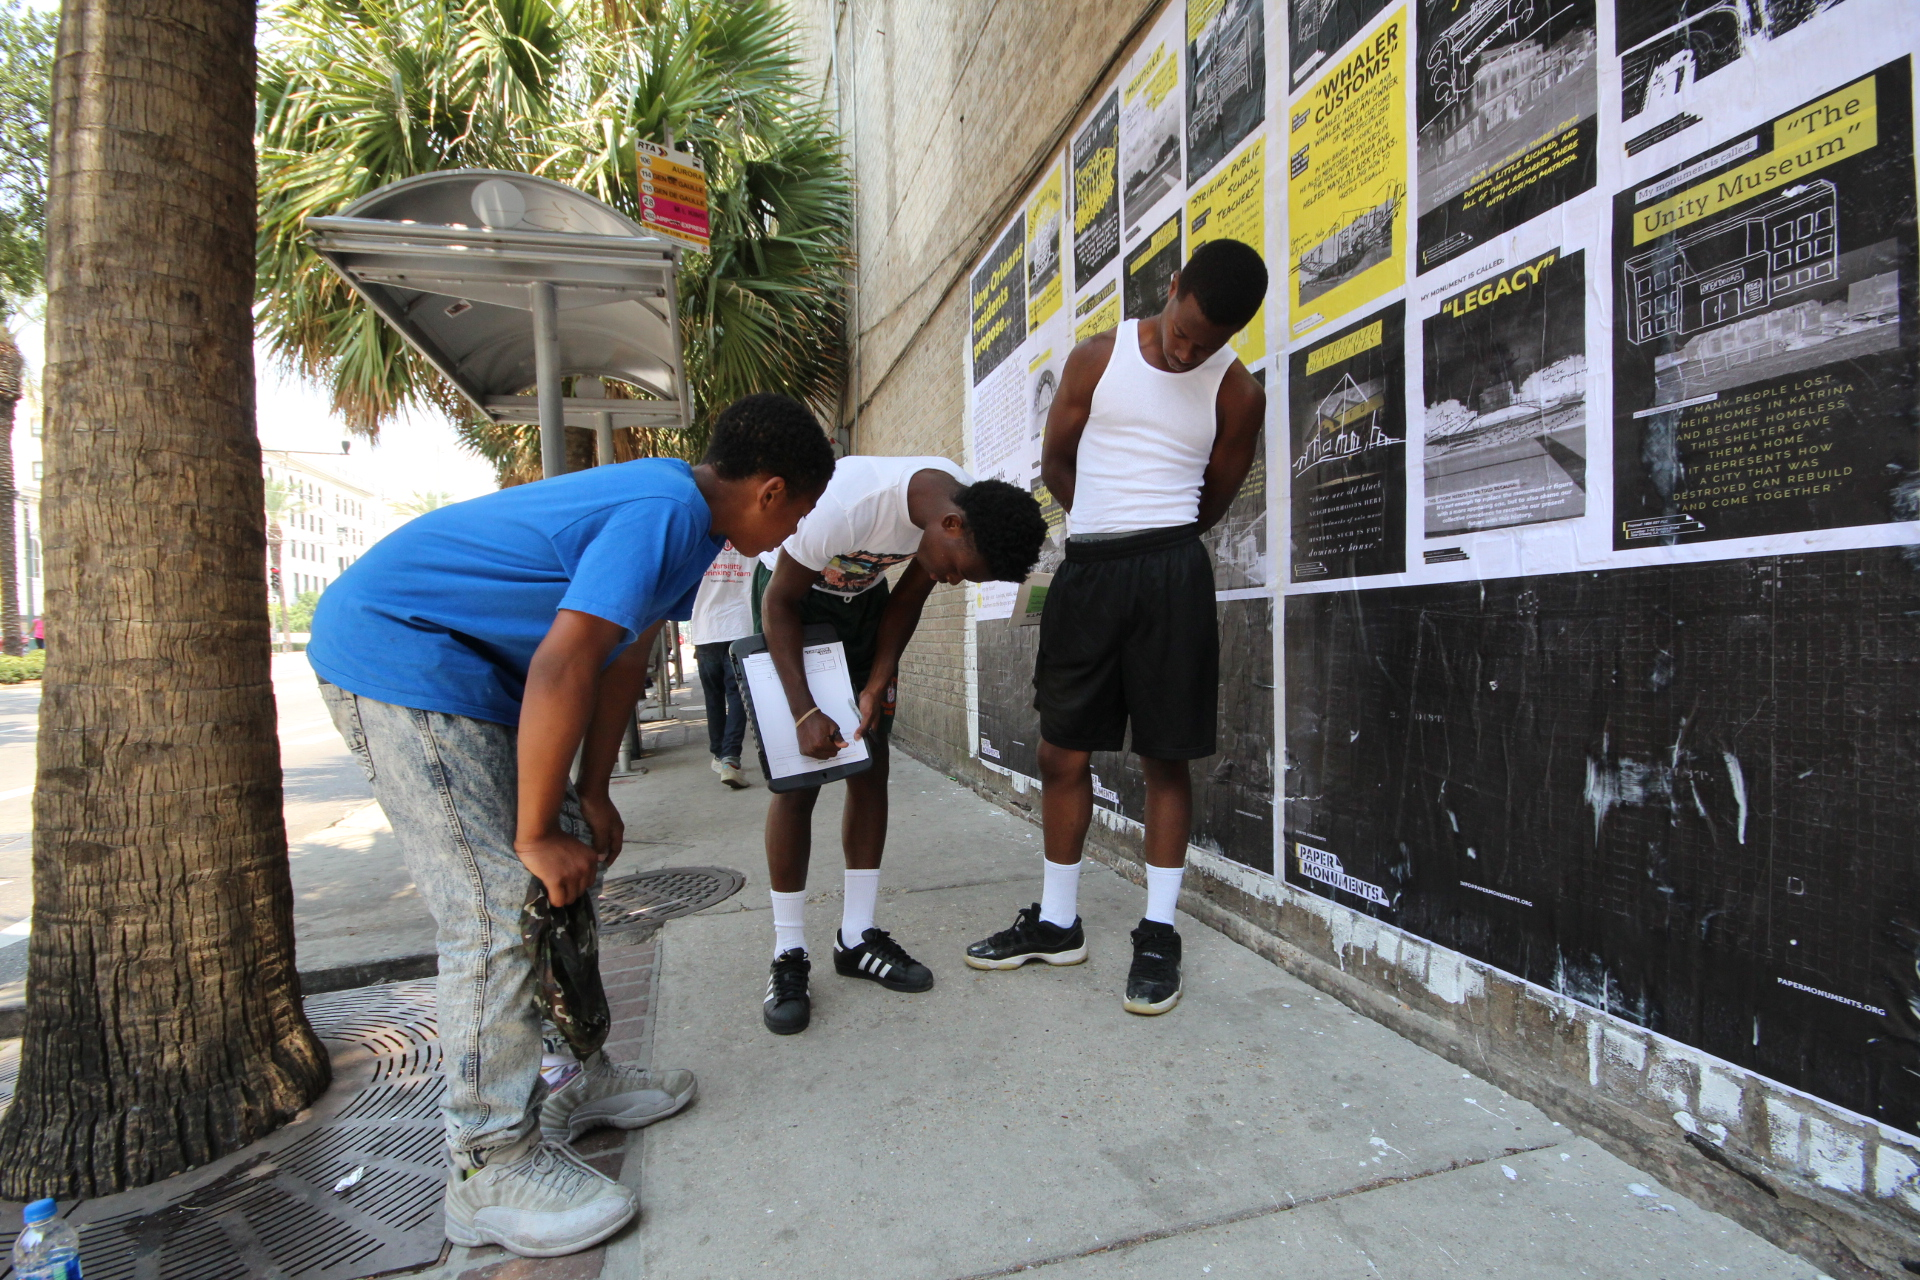 High-school students passing through the bus stop fill out a Public Proposal at the Elk Place site.